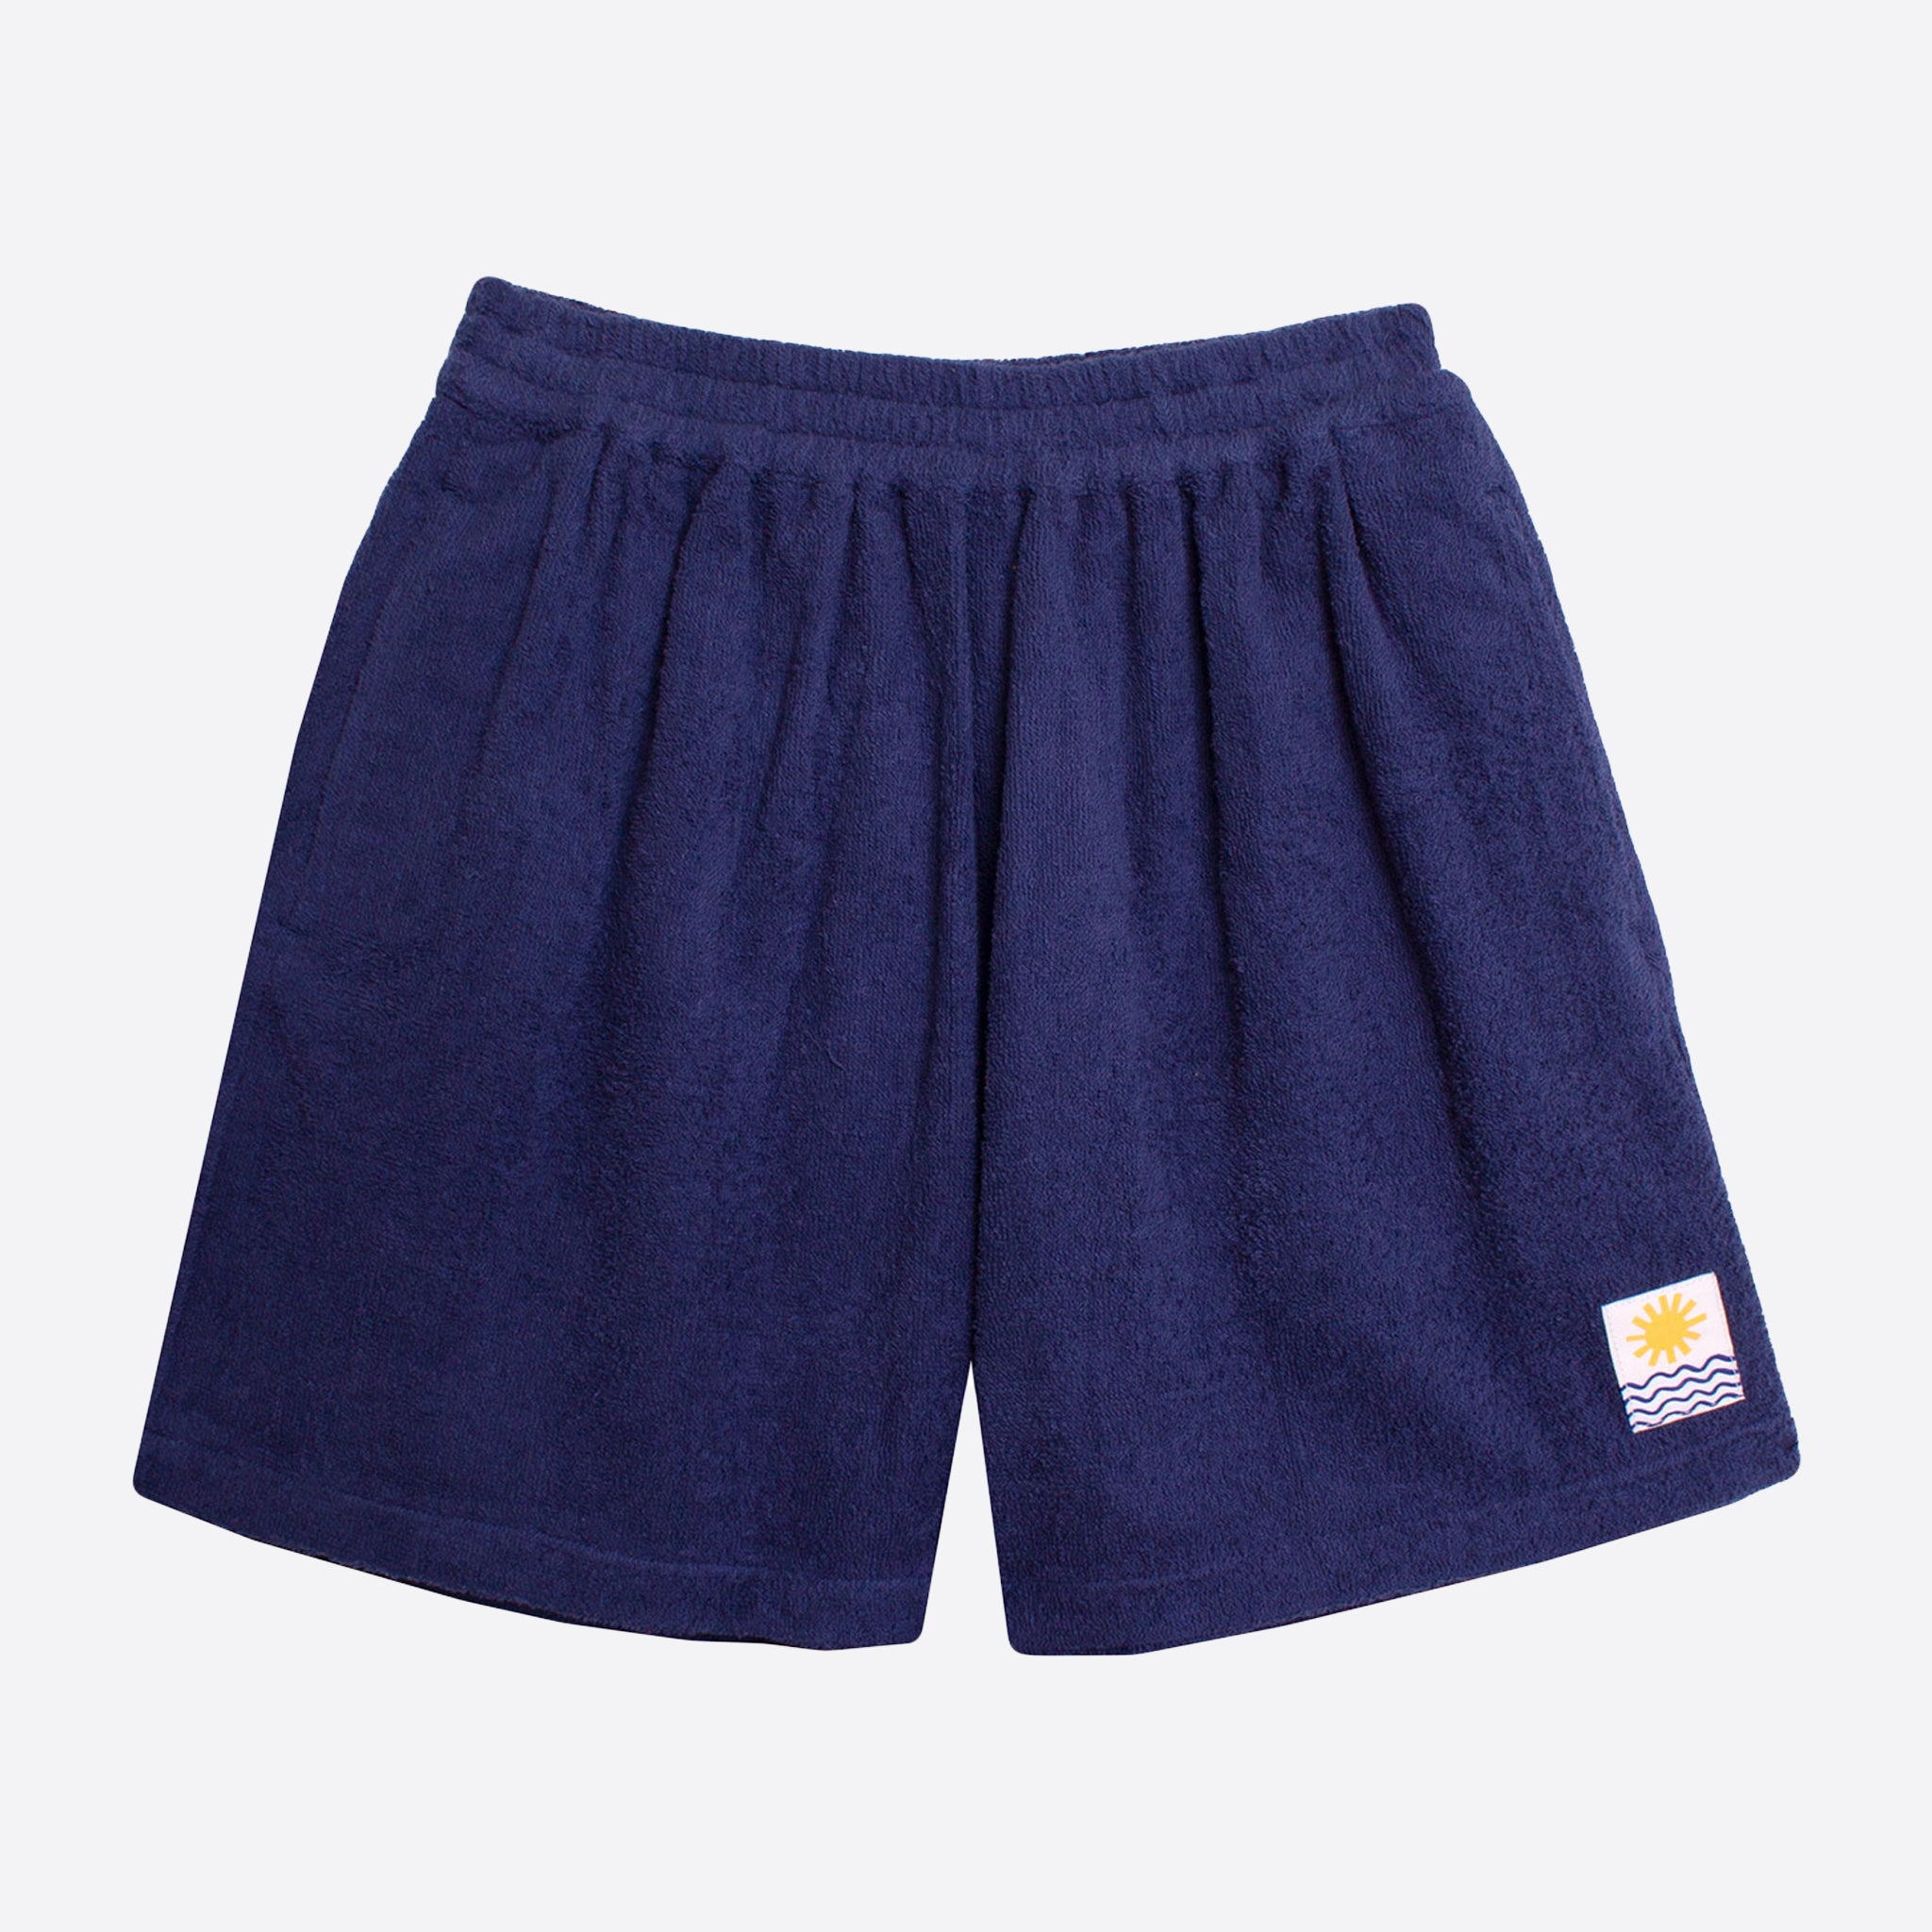 LF Markey Basic Towelling Shorts in Navy